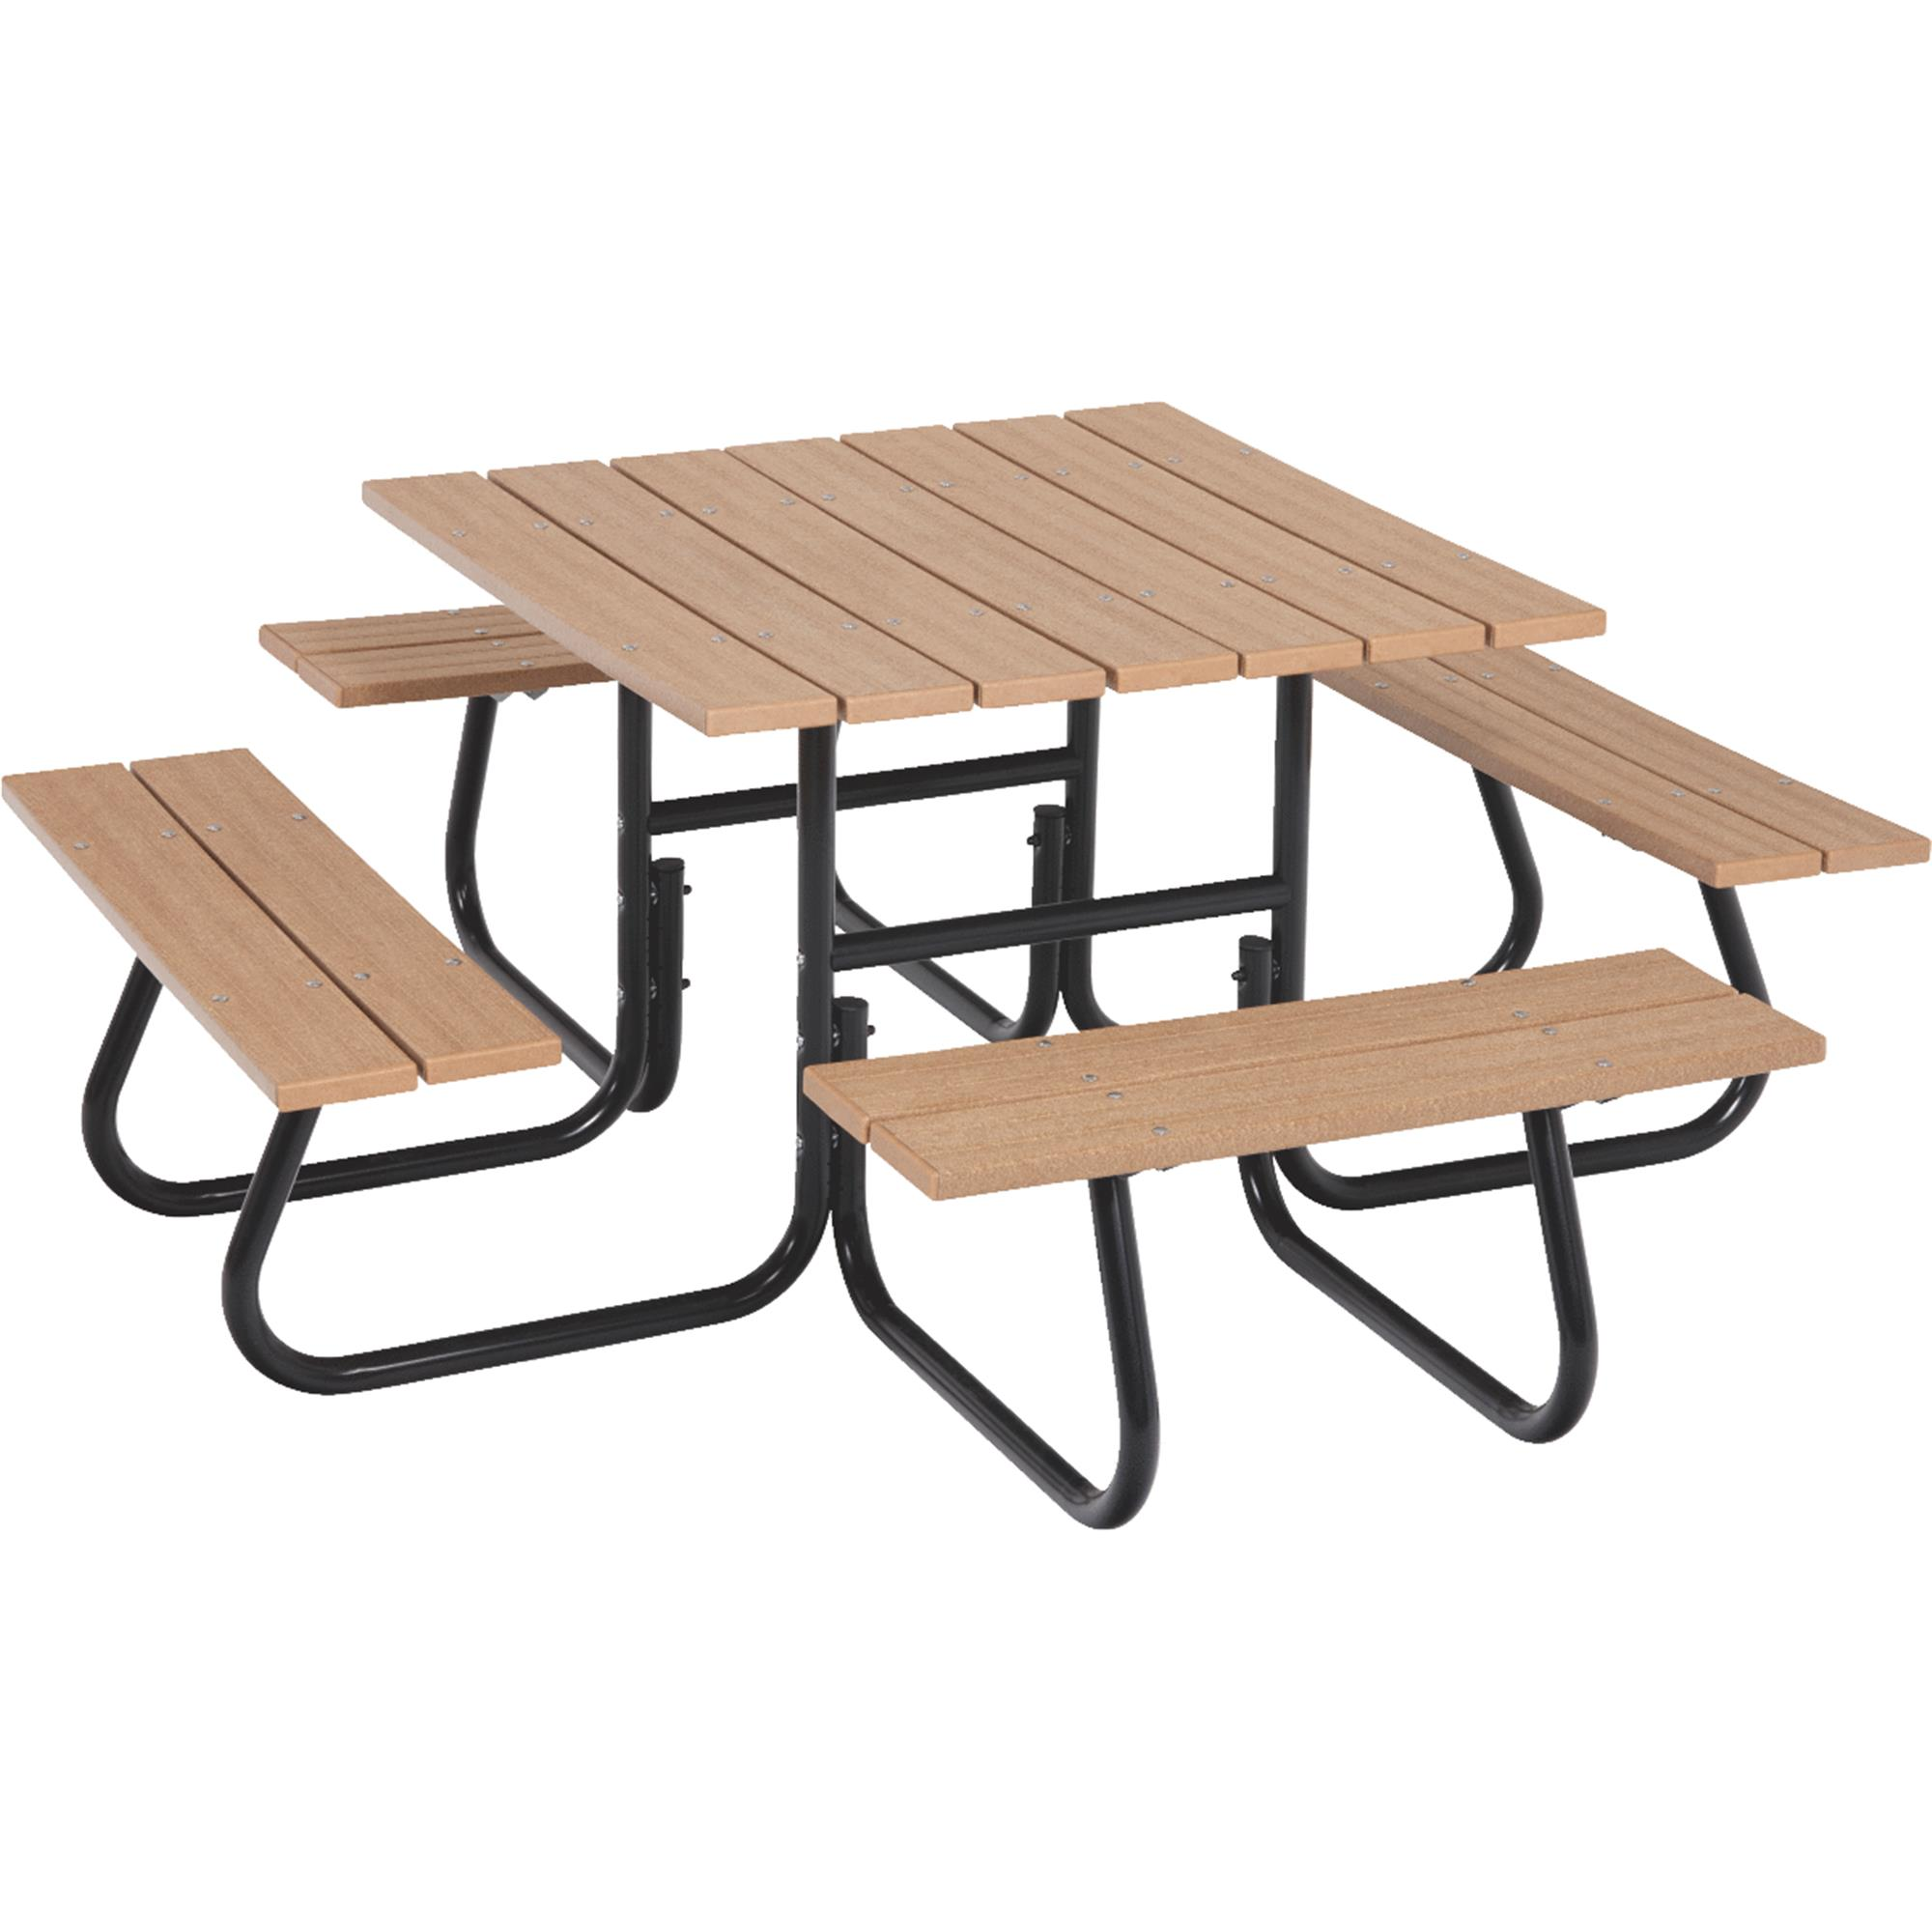 Jack Post 4 Sided Picnic Table   Frame Only